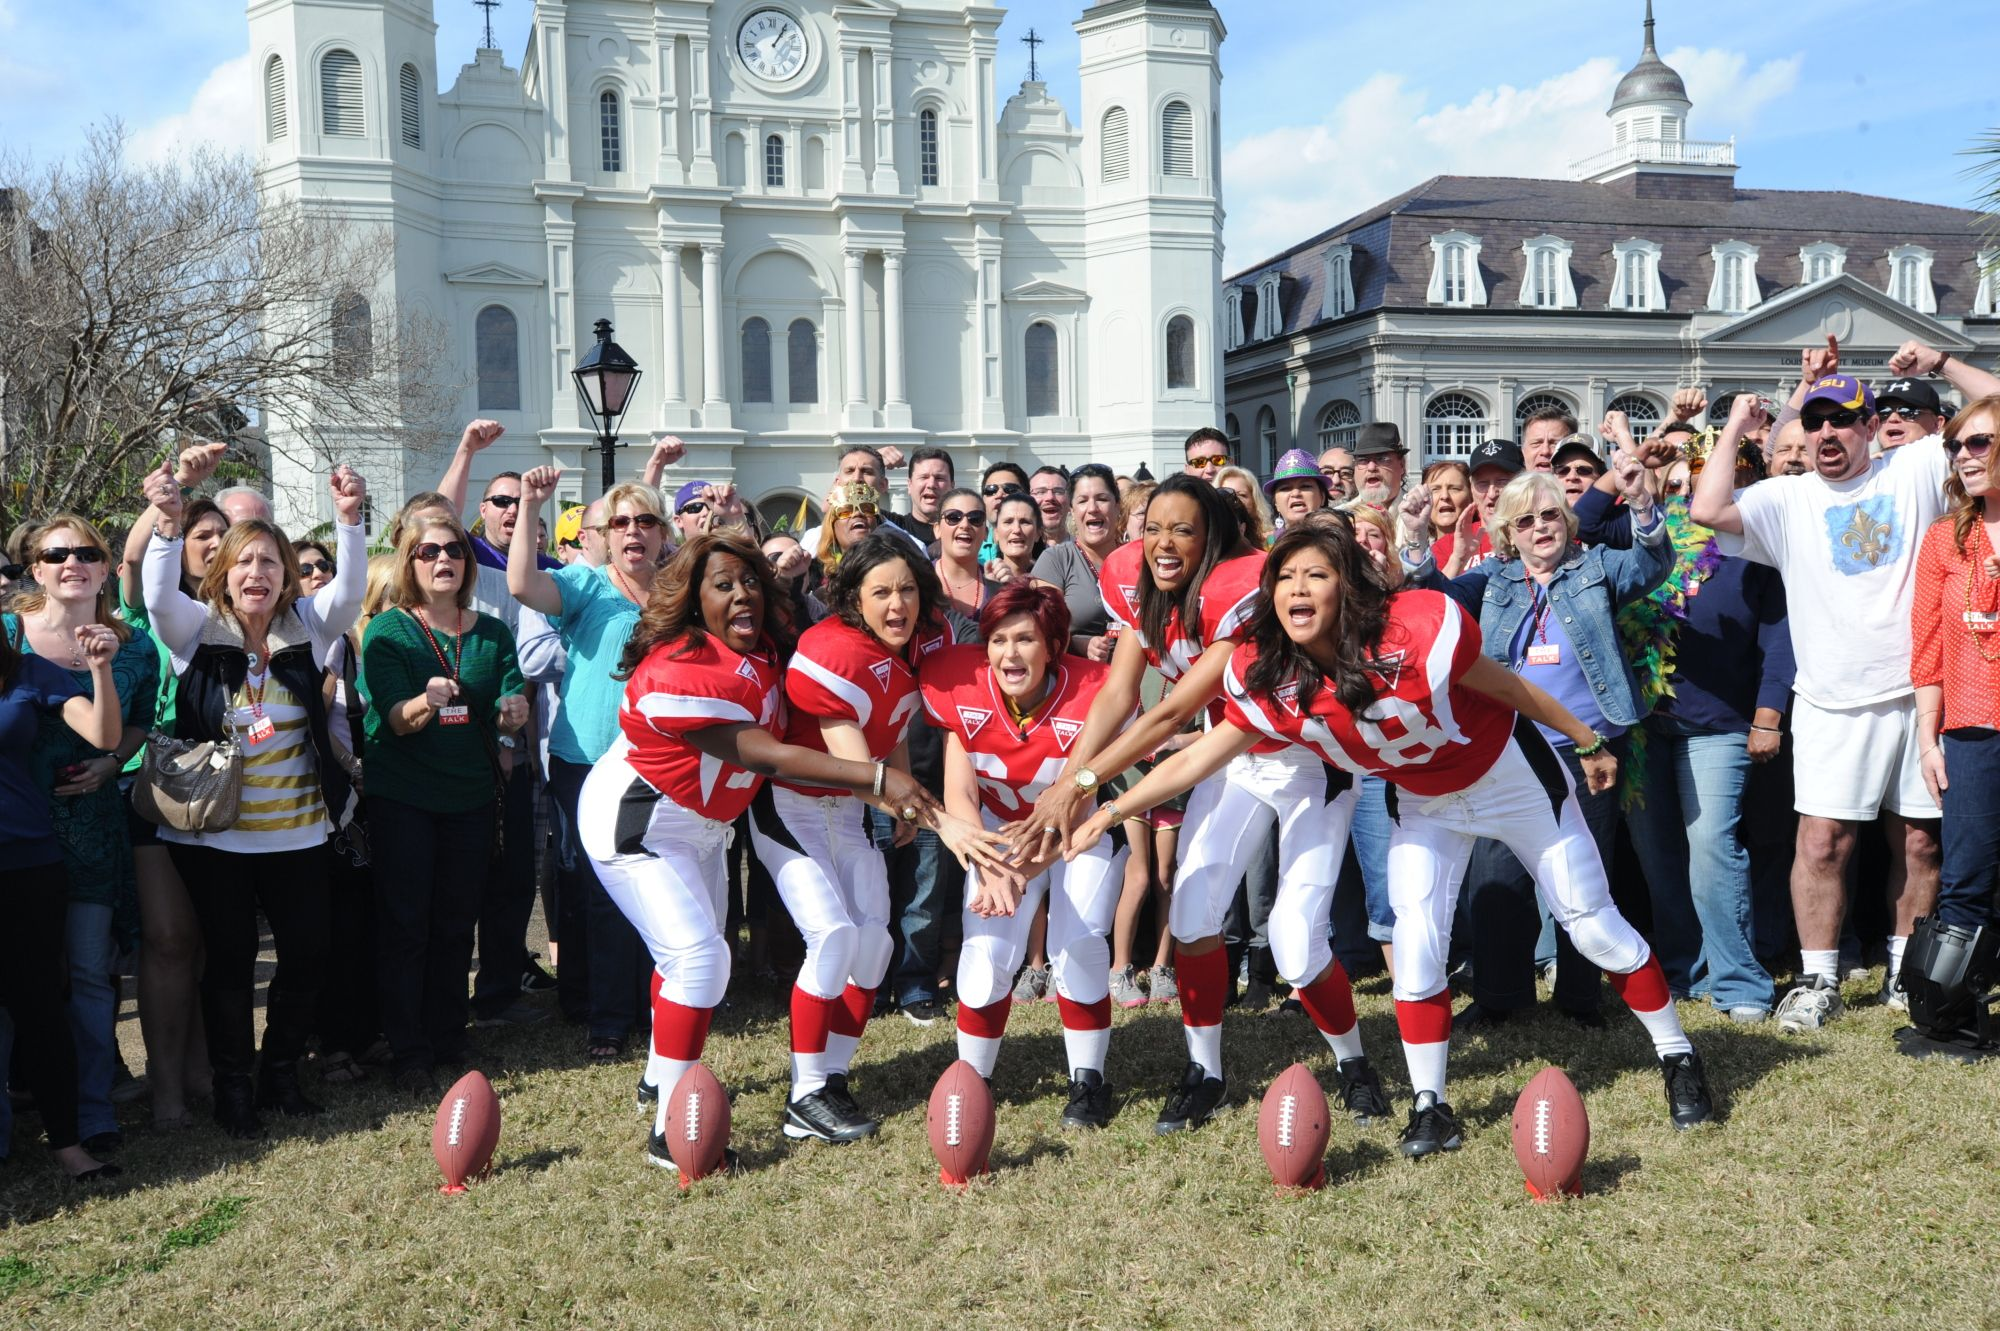 The Ladies Touchdown in The Big Easy!